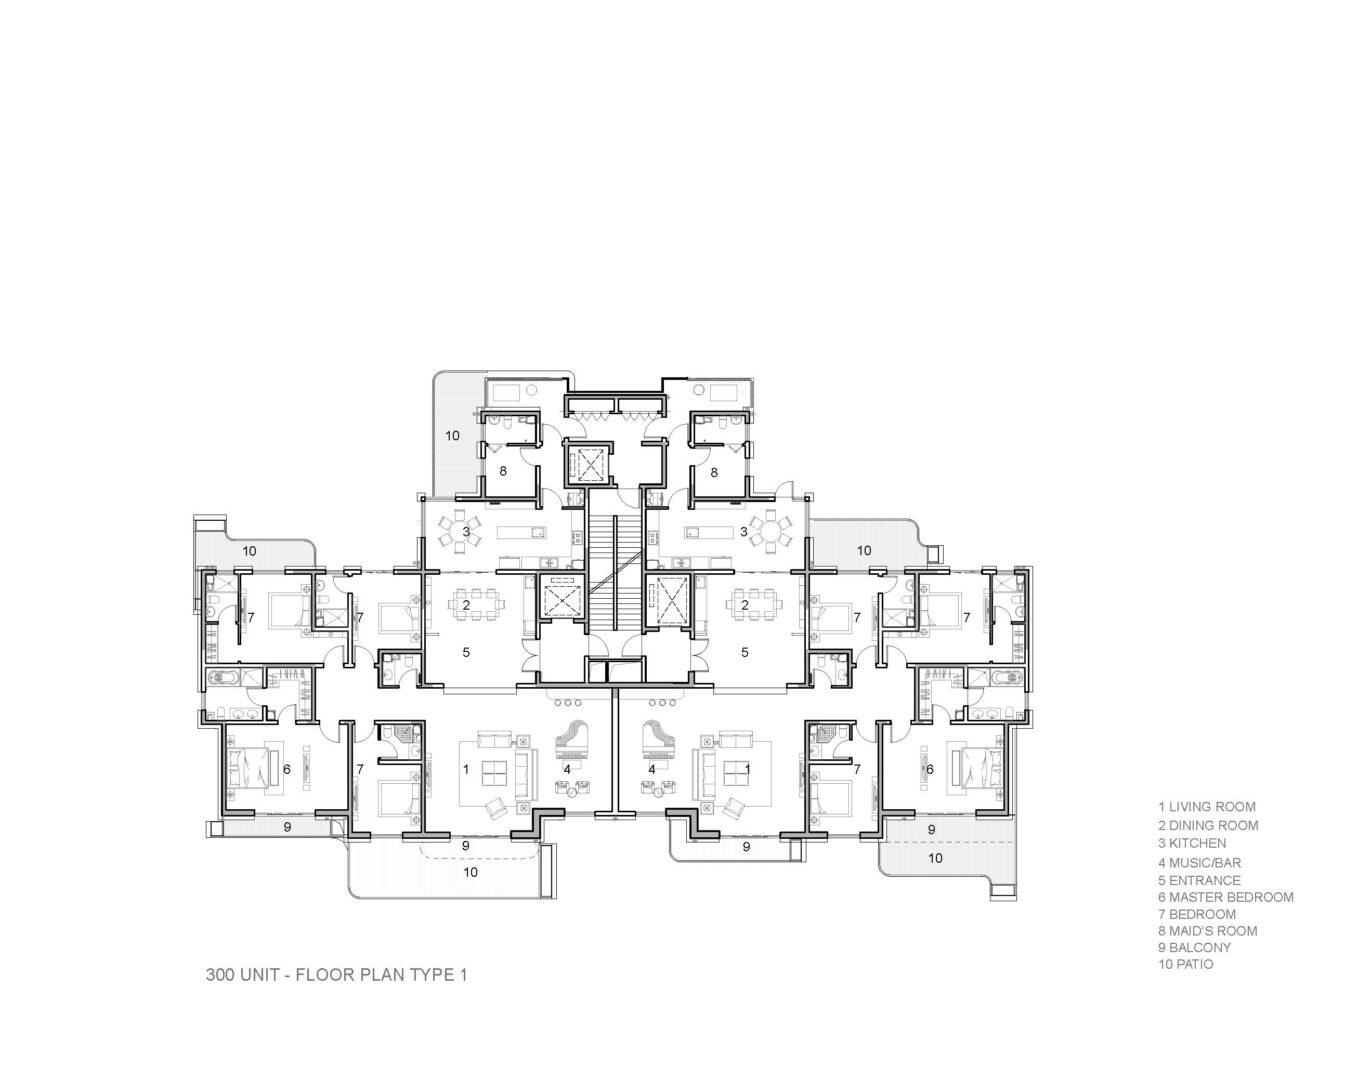 1212_floor-plan_300-unit-type-1